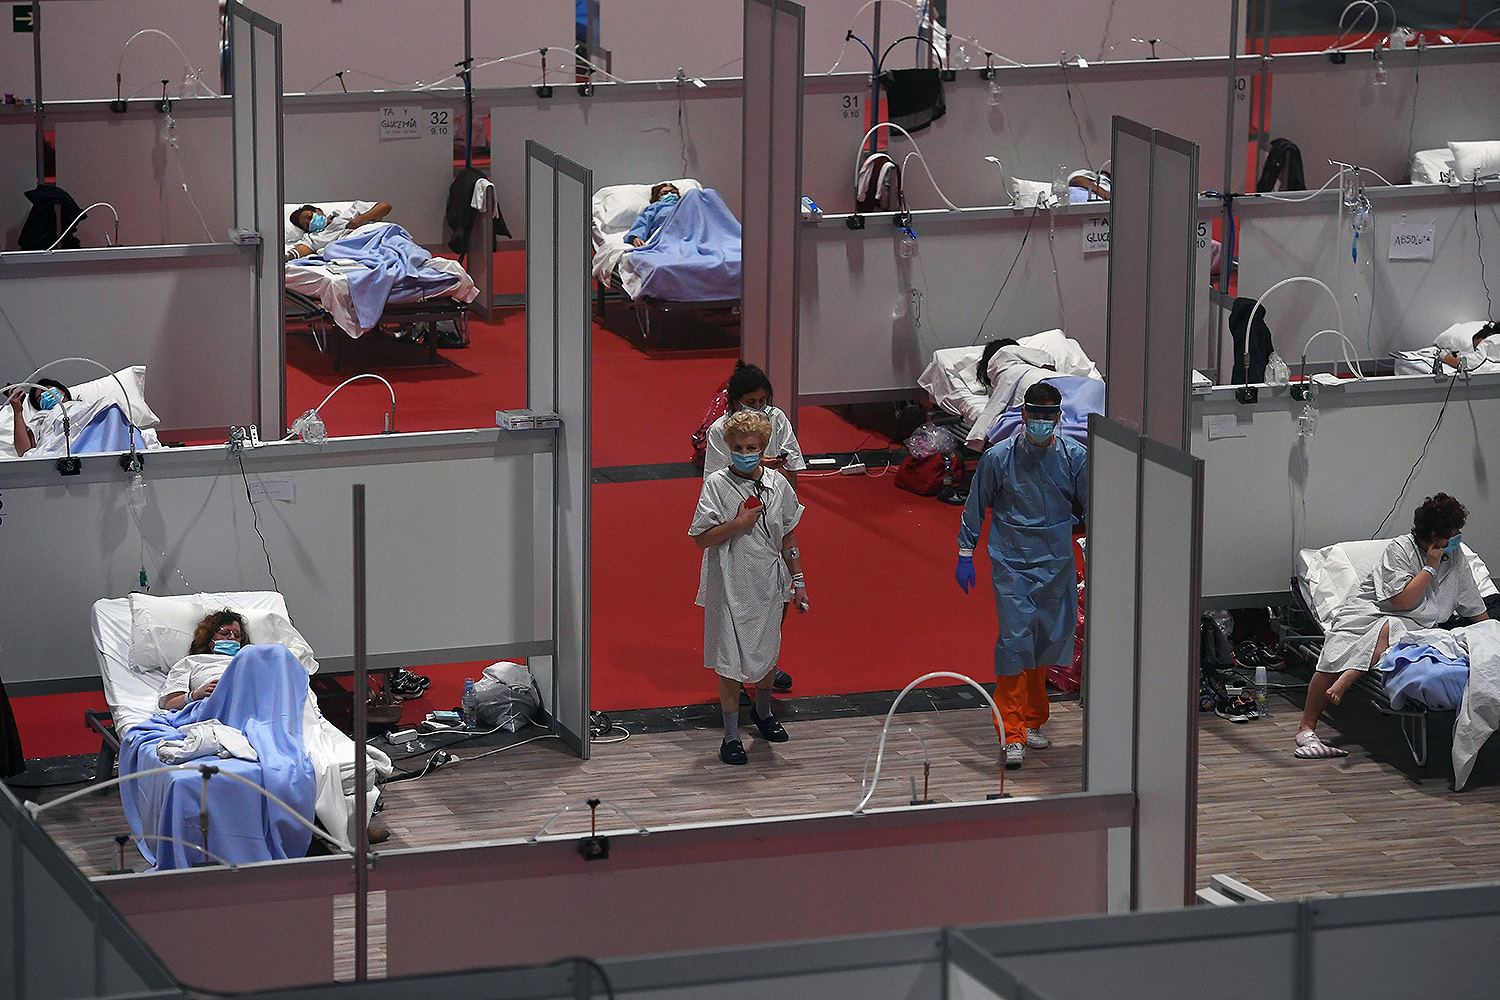 A temporary hospital for COVID-19 patients is set up at a convention center in Madrid on April 3.  PIERRE-PHILIPPE MARCOU/AFP via Getty Images